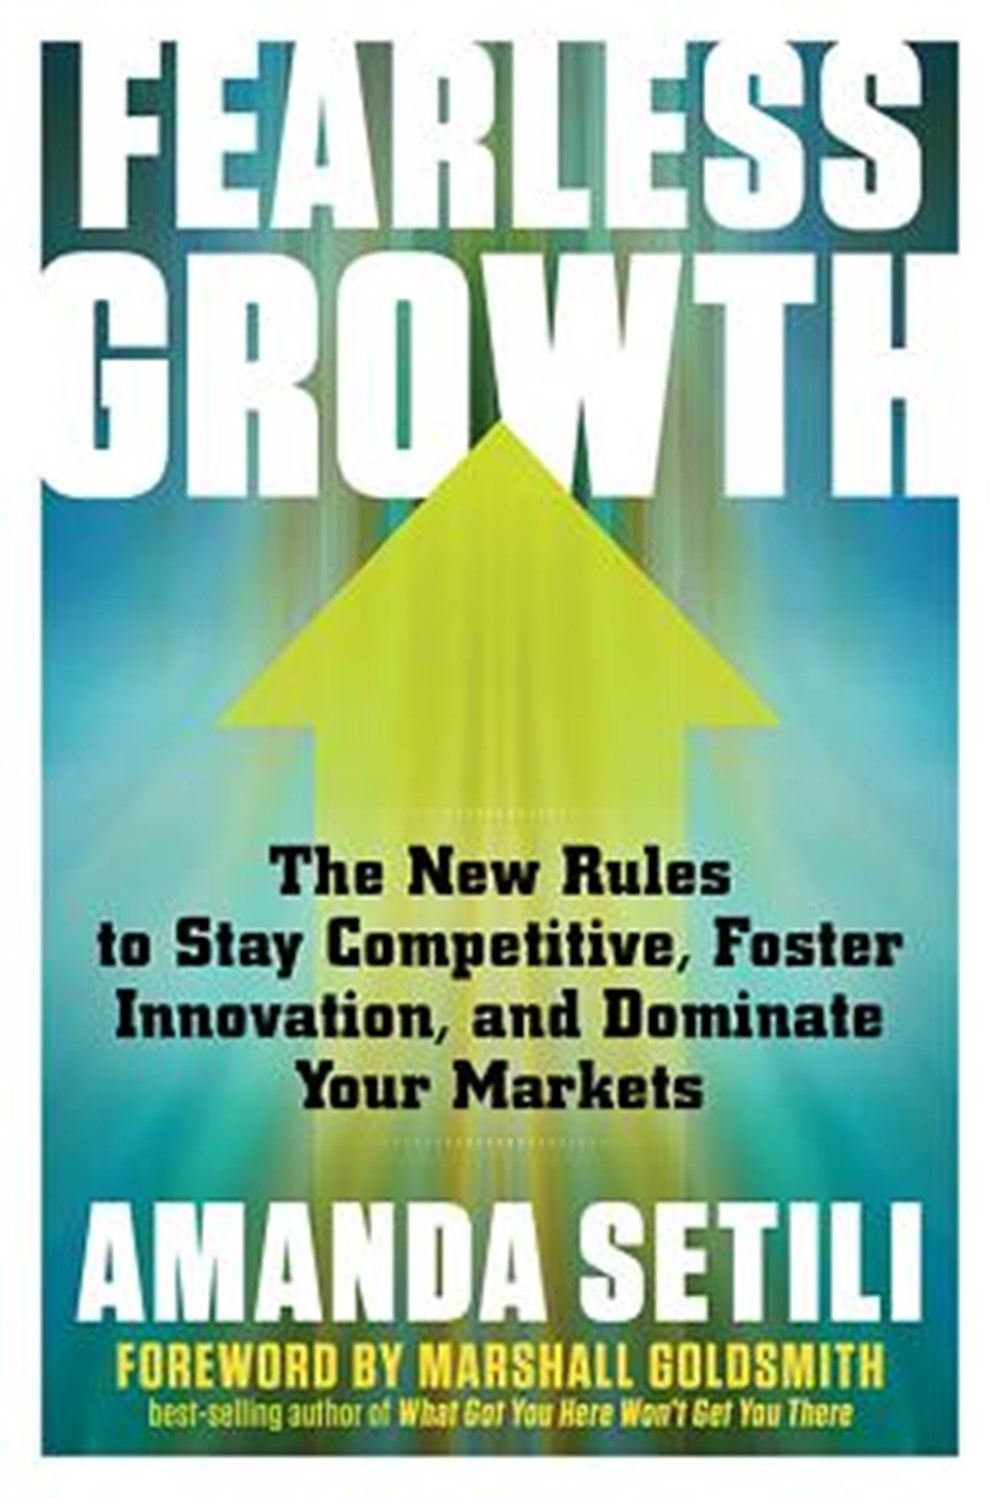 Fearless Growth The New Rules to Stay Competitive, Foster Innovation, and Dominate Your Markets